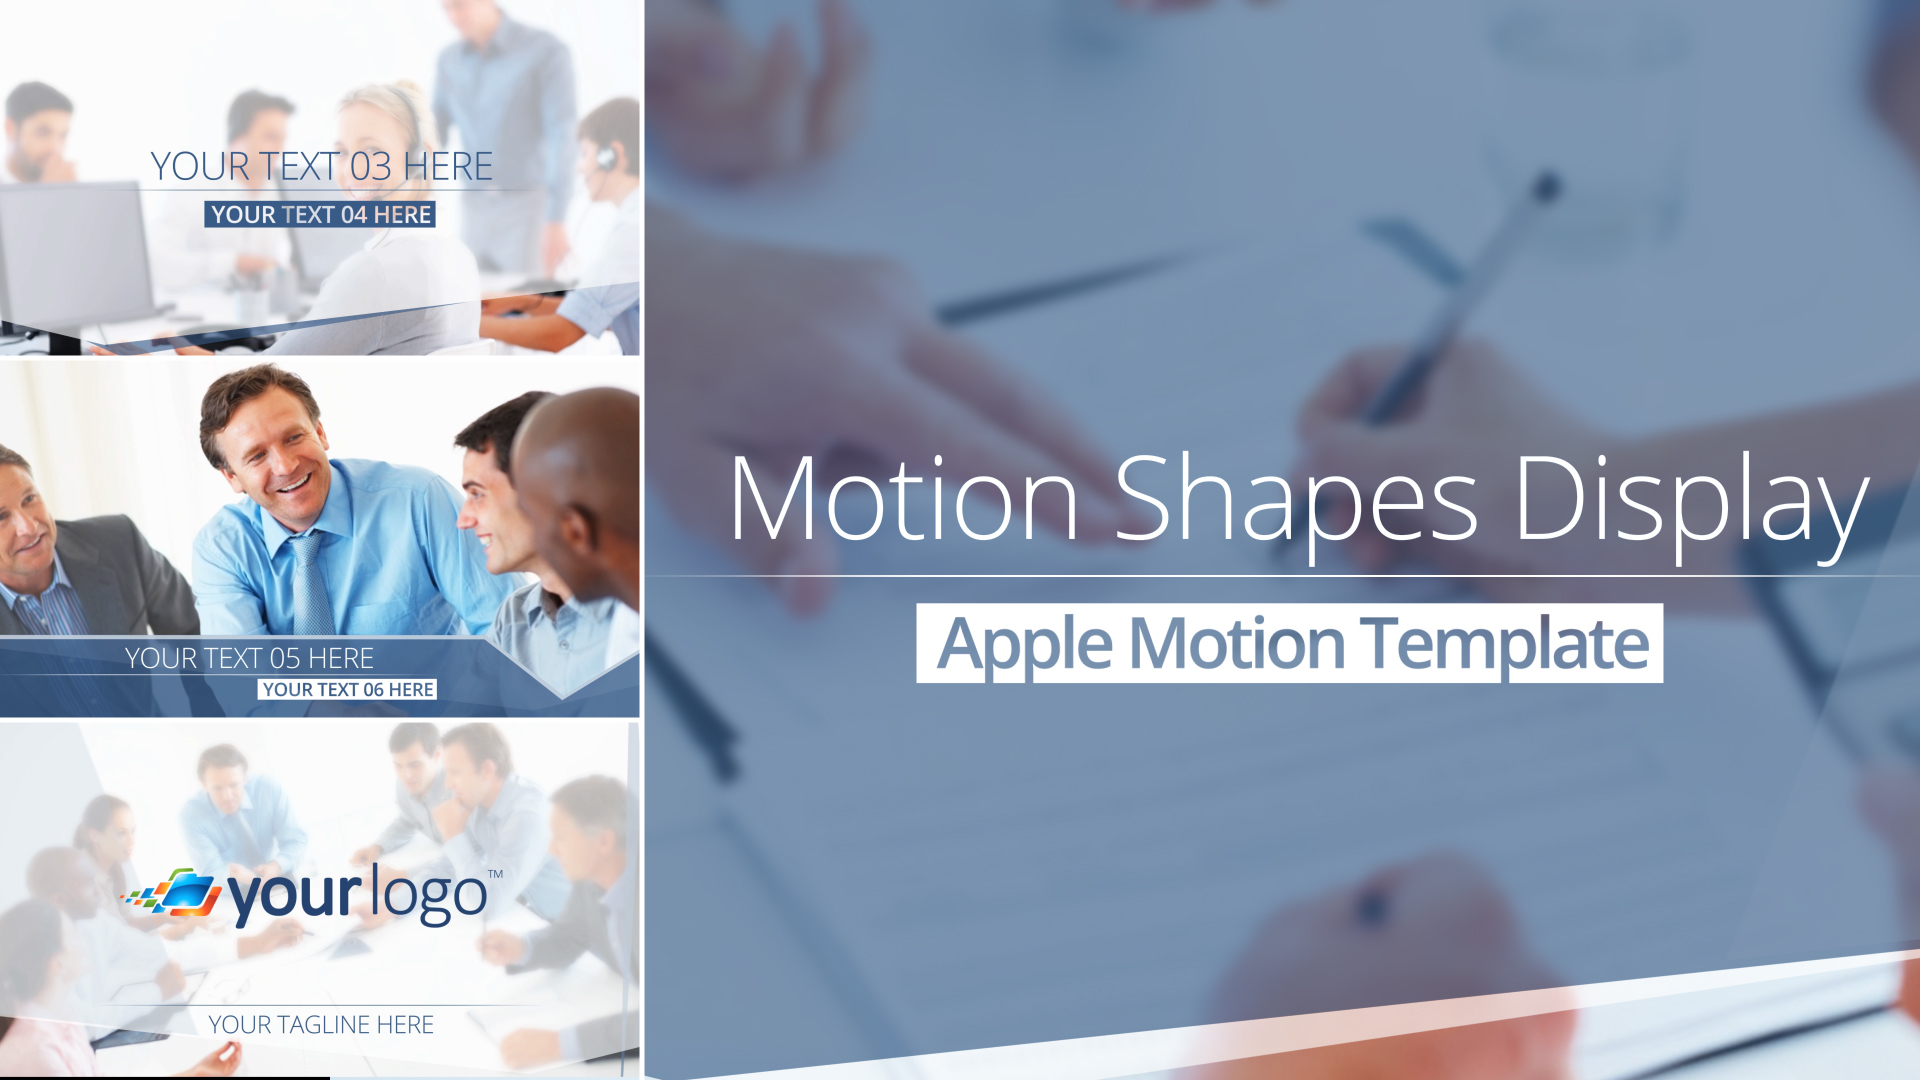 Motion Shapes Display Final Cut Pro X Template